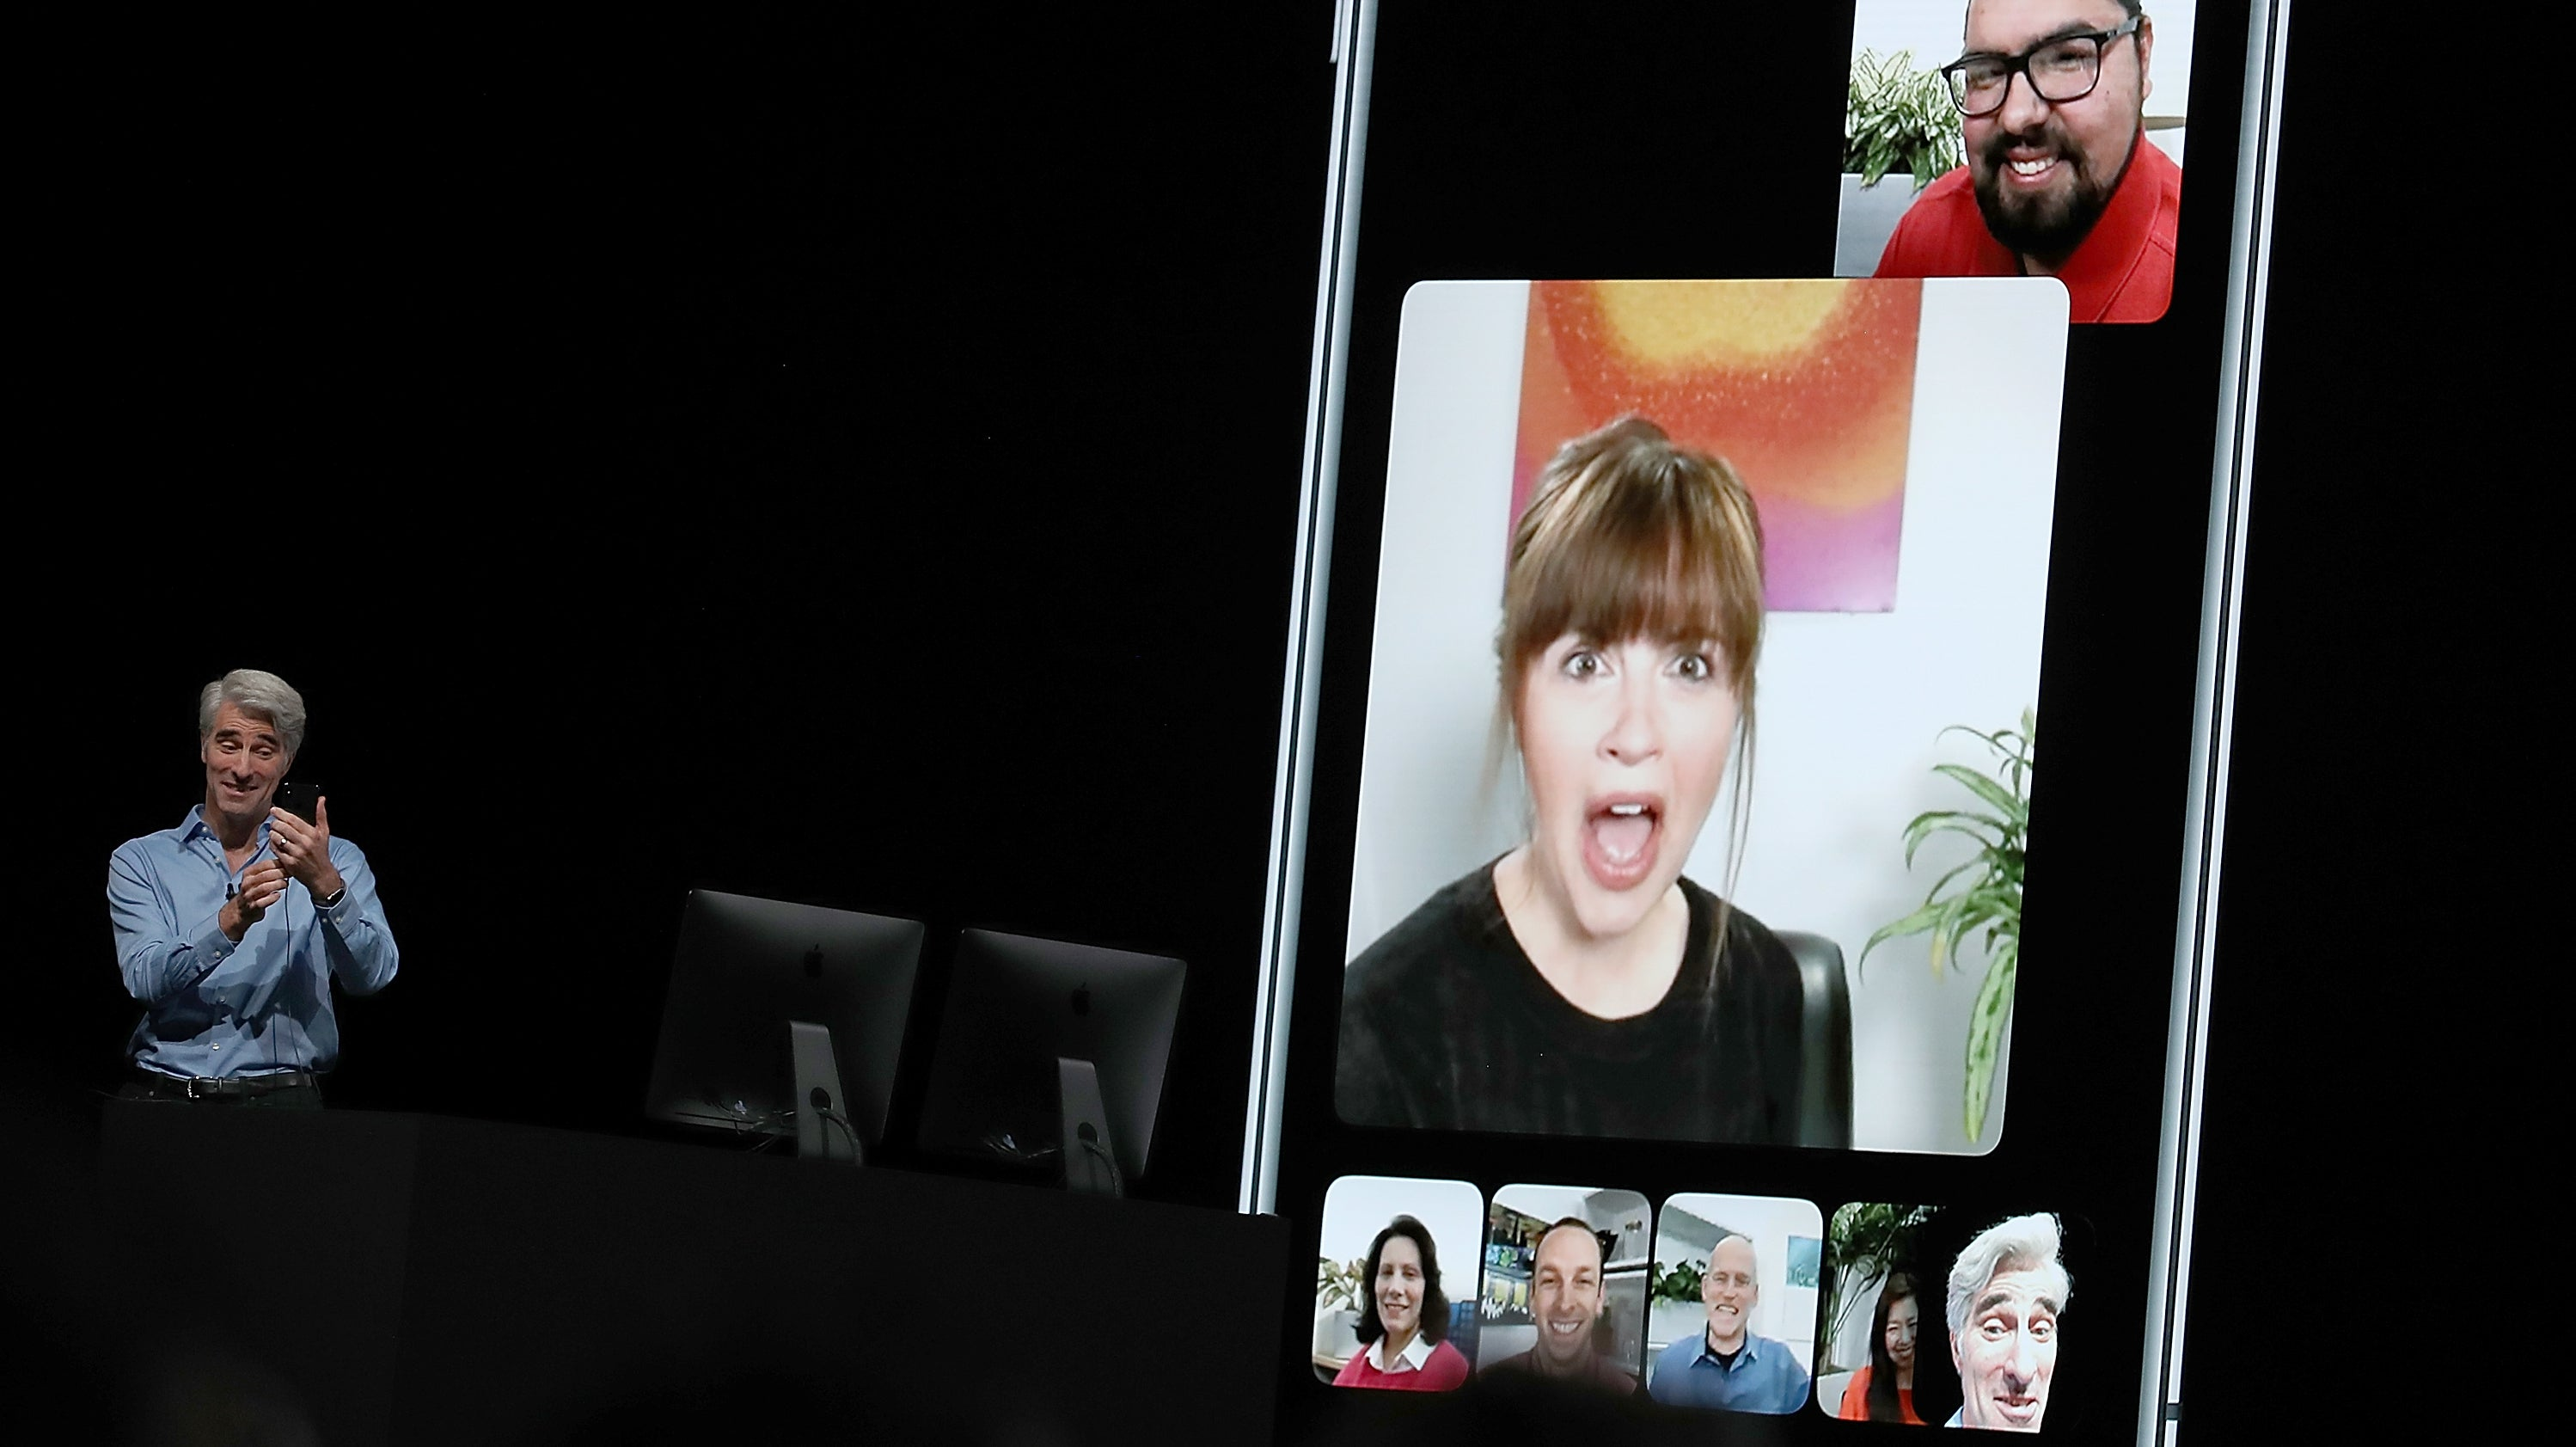 You Can Now Download A Fix For That Scary Apple FaceTime Eavesdropping Bug